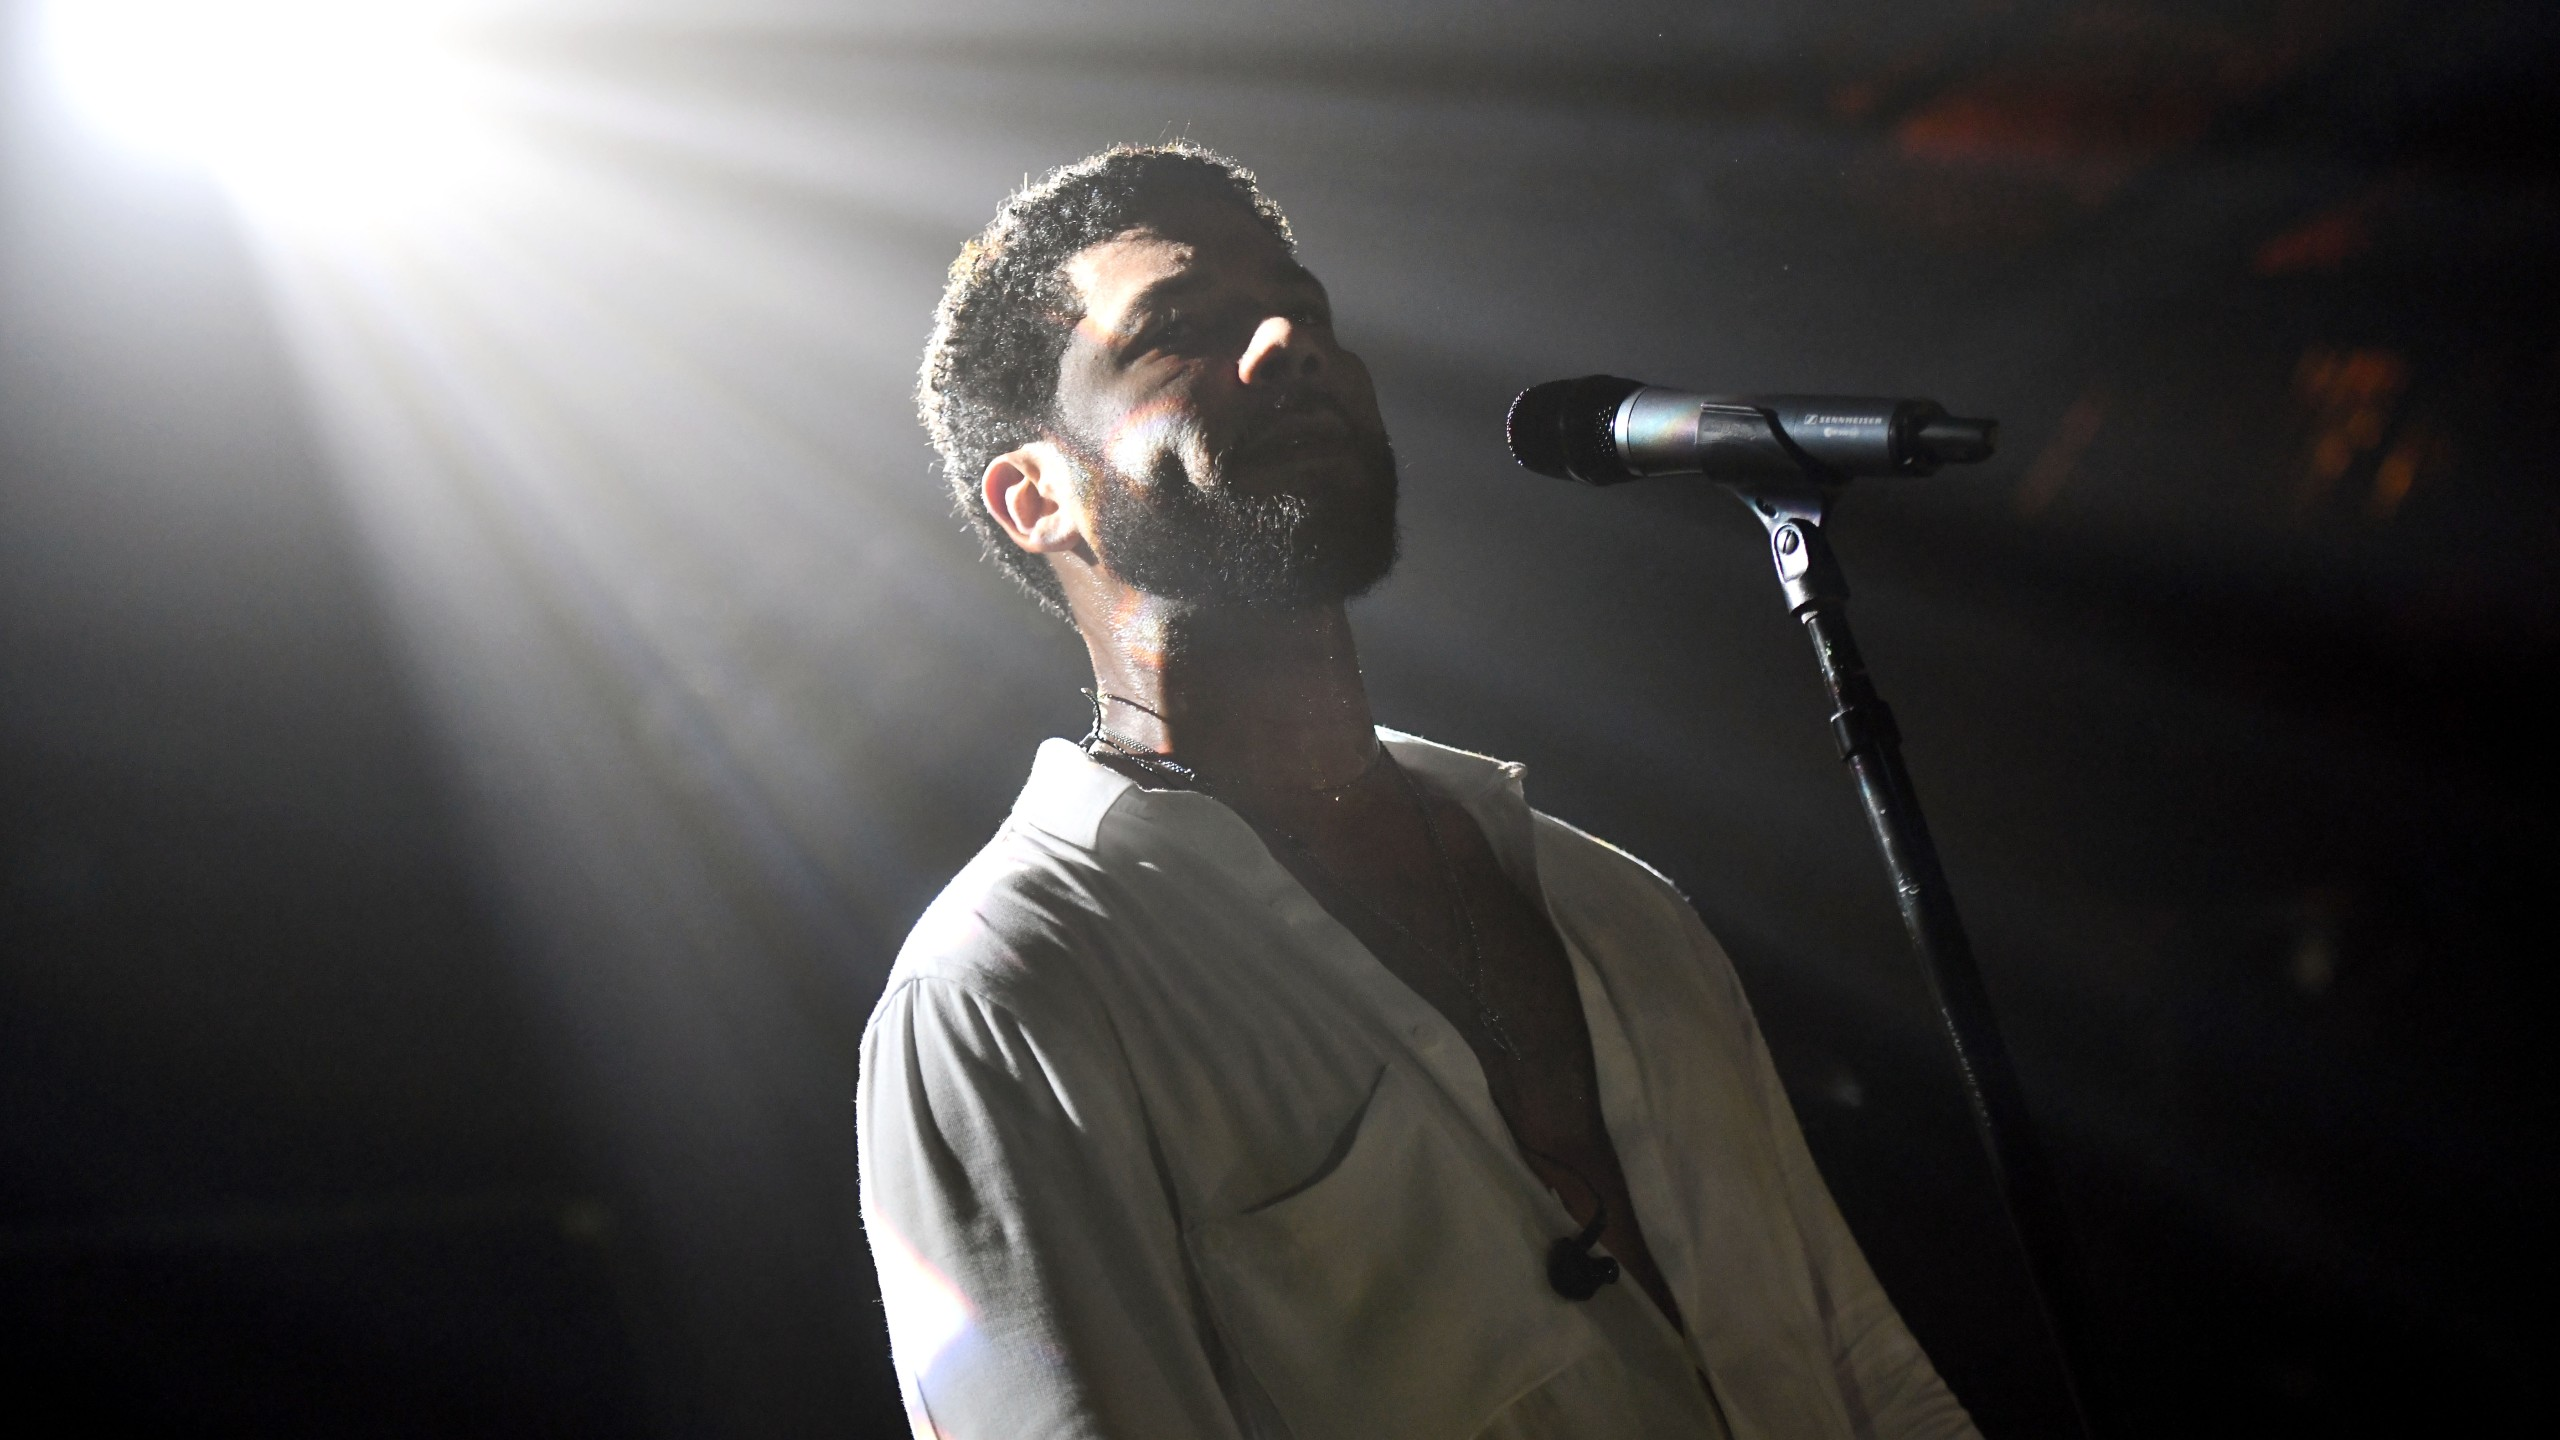 Jussie Smollett performs at the Troubadour on Feb. 02, 2019 in West Hollywood. (Credit: Scott Dudelson/Getty Images for ABA)